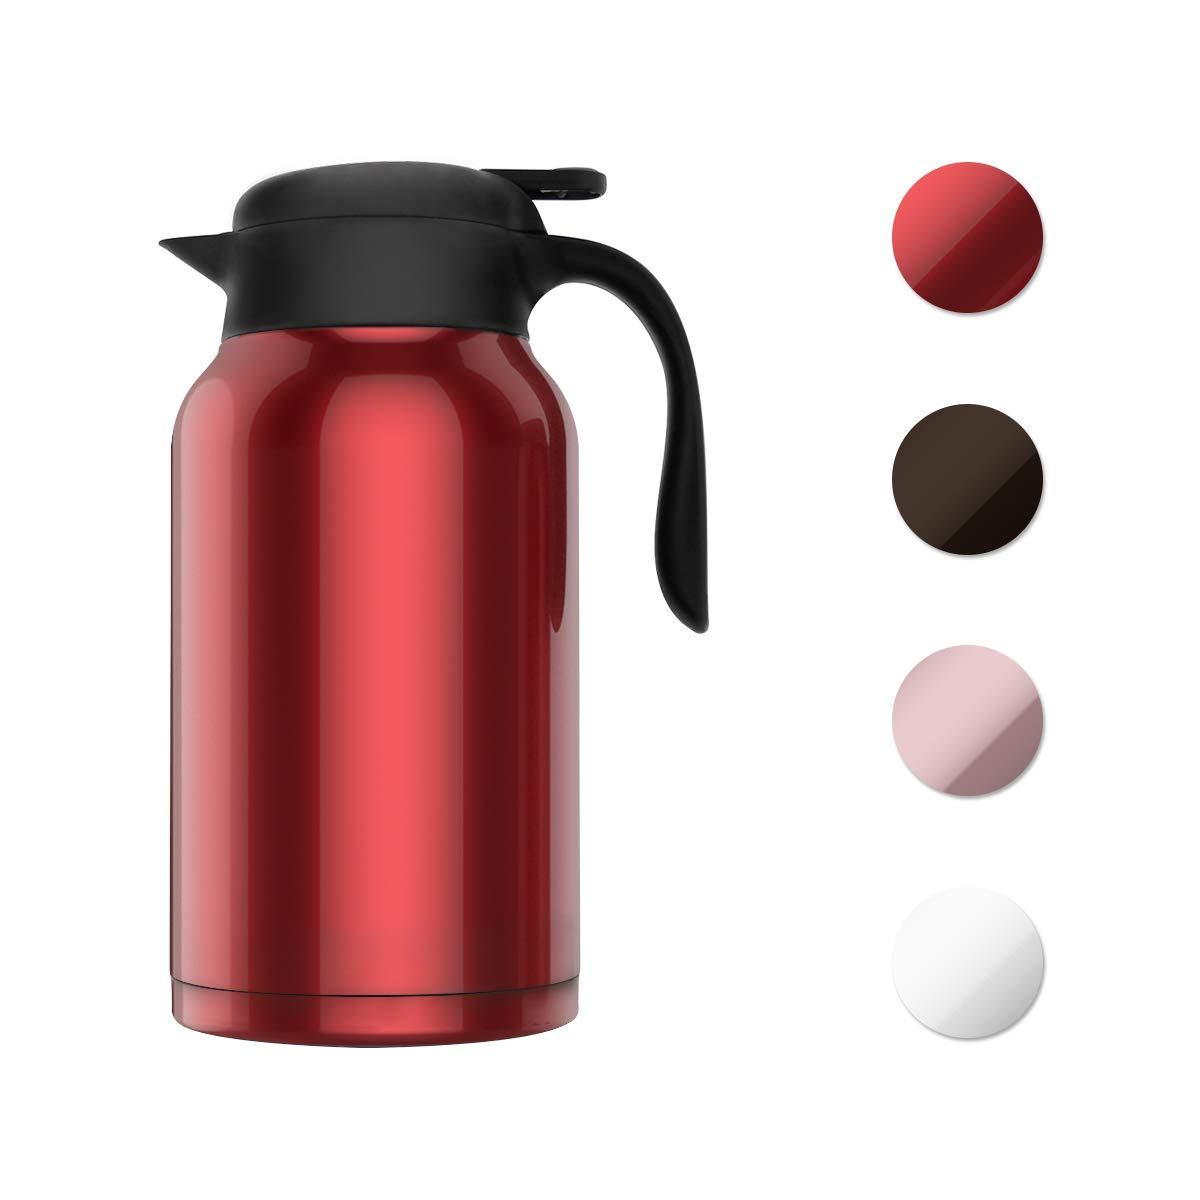 SDREAM 68 Oz Coffee Carafe Thermal Stainless Steel Double Walled Thermal Pots Hot Cold Beverage (Red) by SDREAM (Image #1)